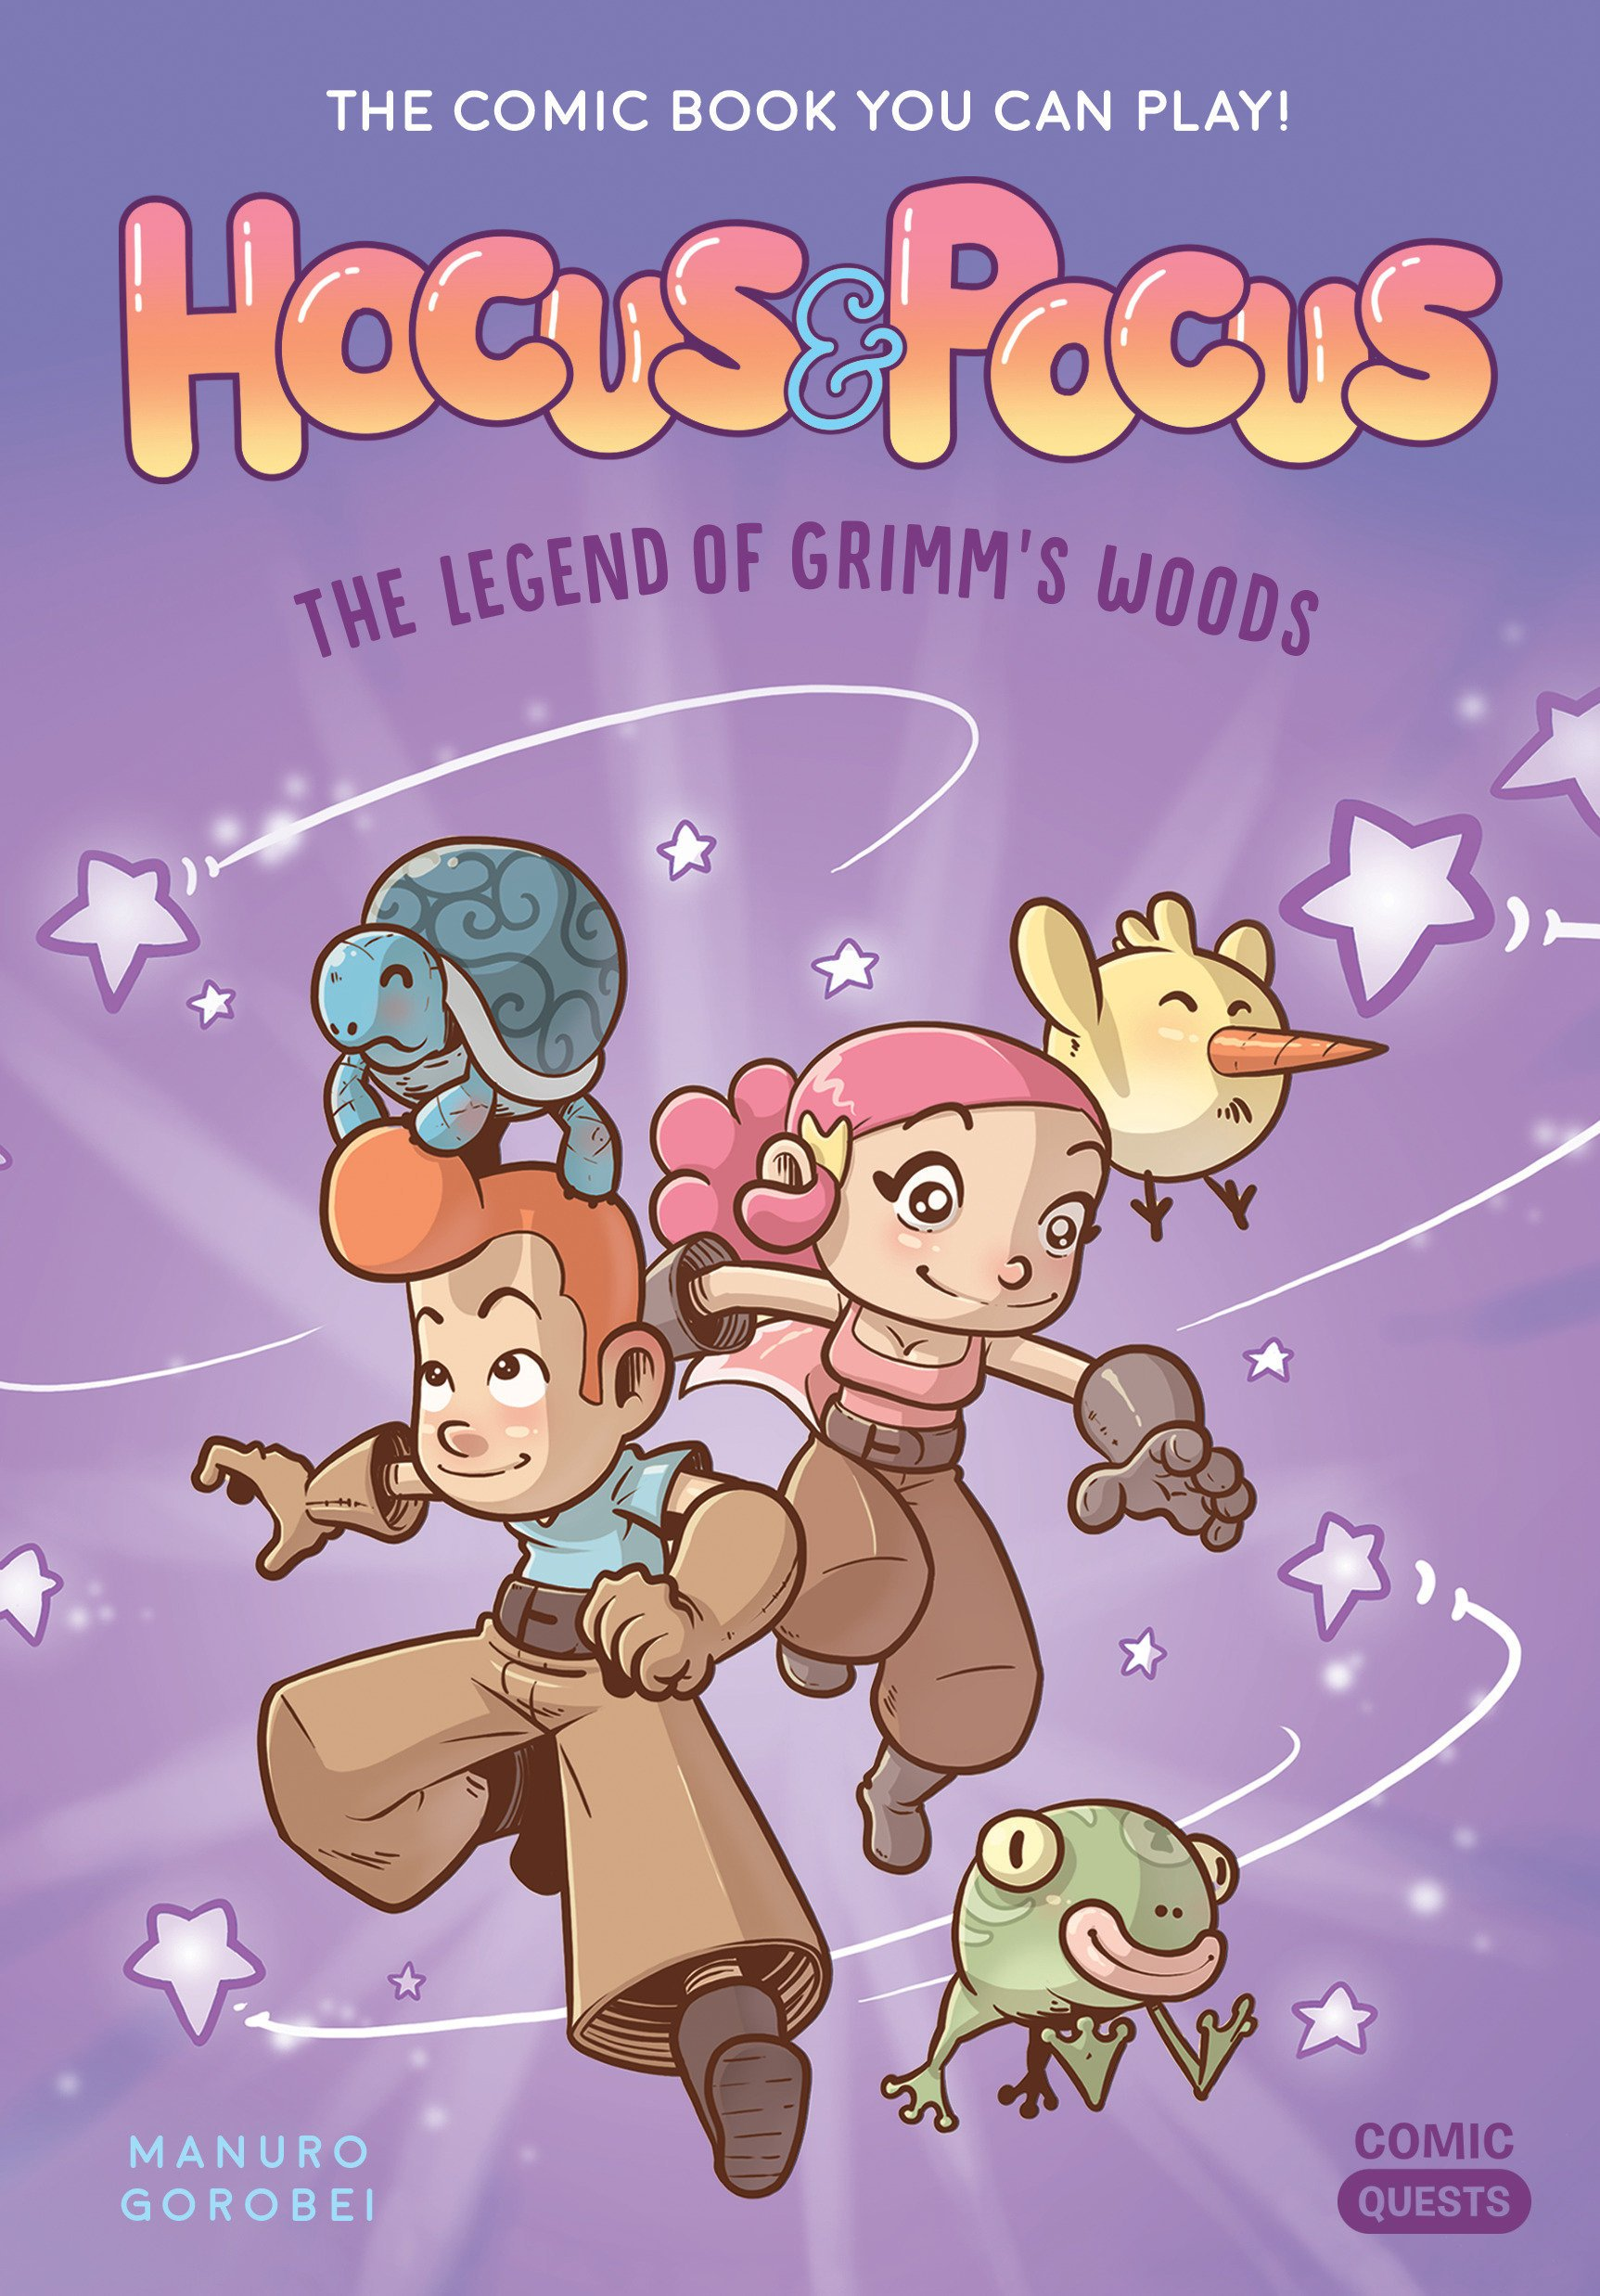 Hocus & Pocus: The Legend of Grimm's Woods: The Comic Book You Can Play ( Comic Quests): Manuro, Gorobei: 9781683690573: Amazon.com: Books